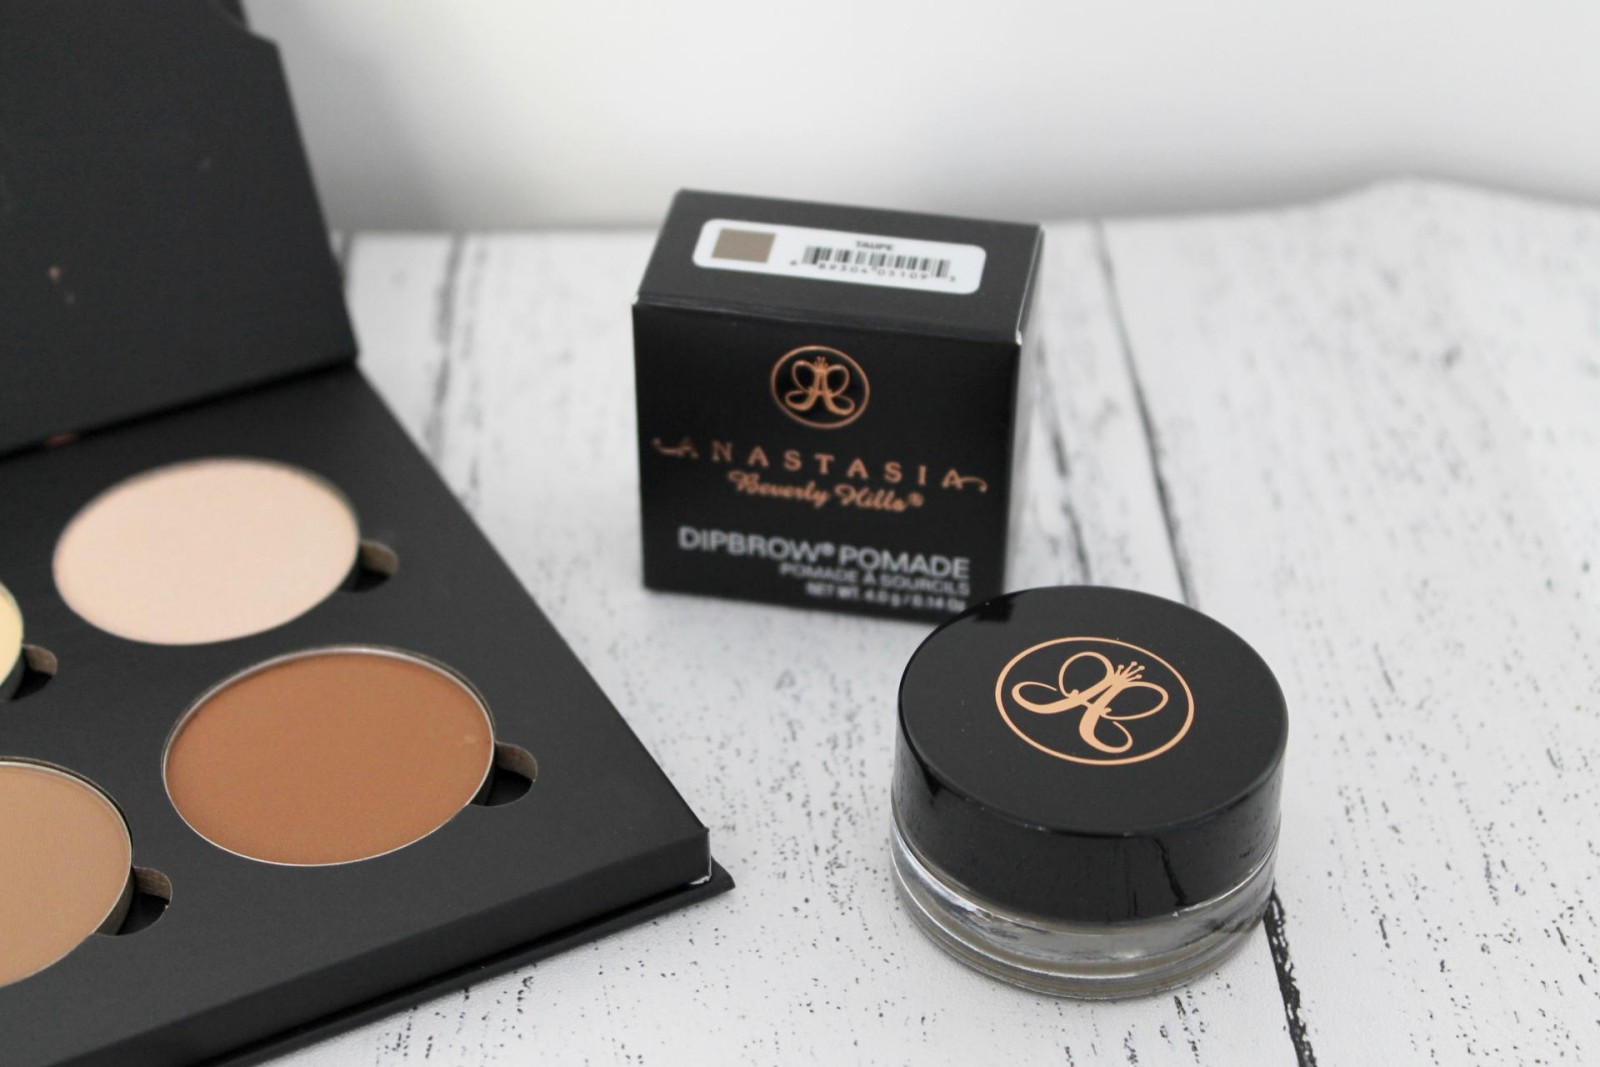 Anastasia Beverly Hills Review 4